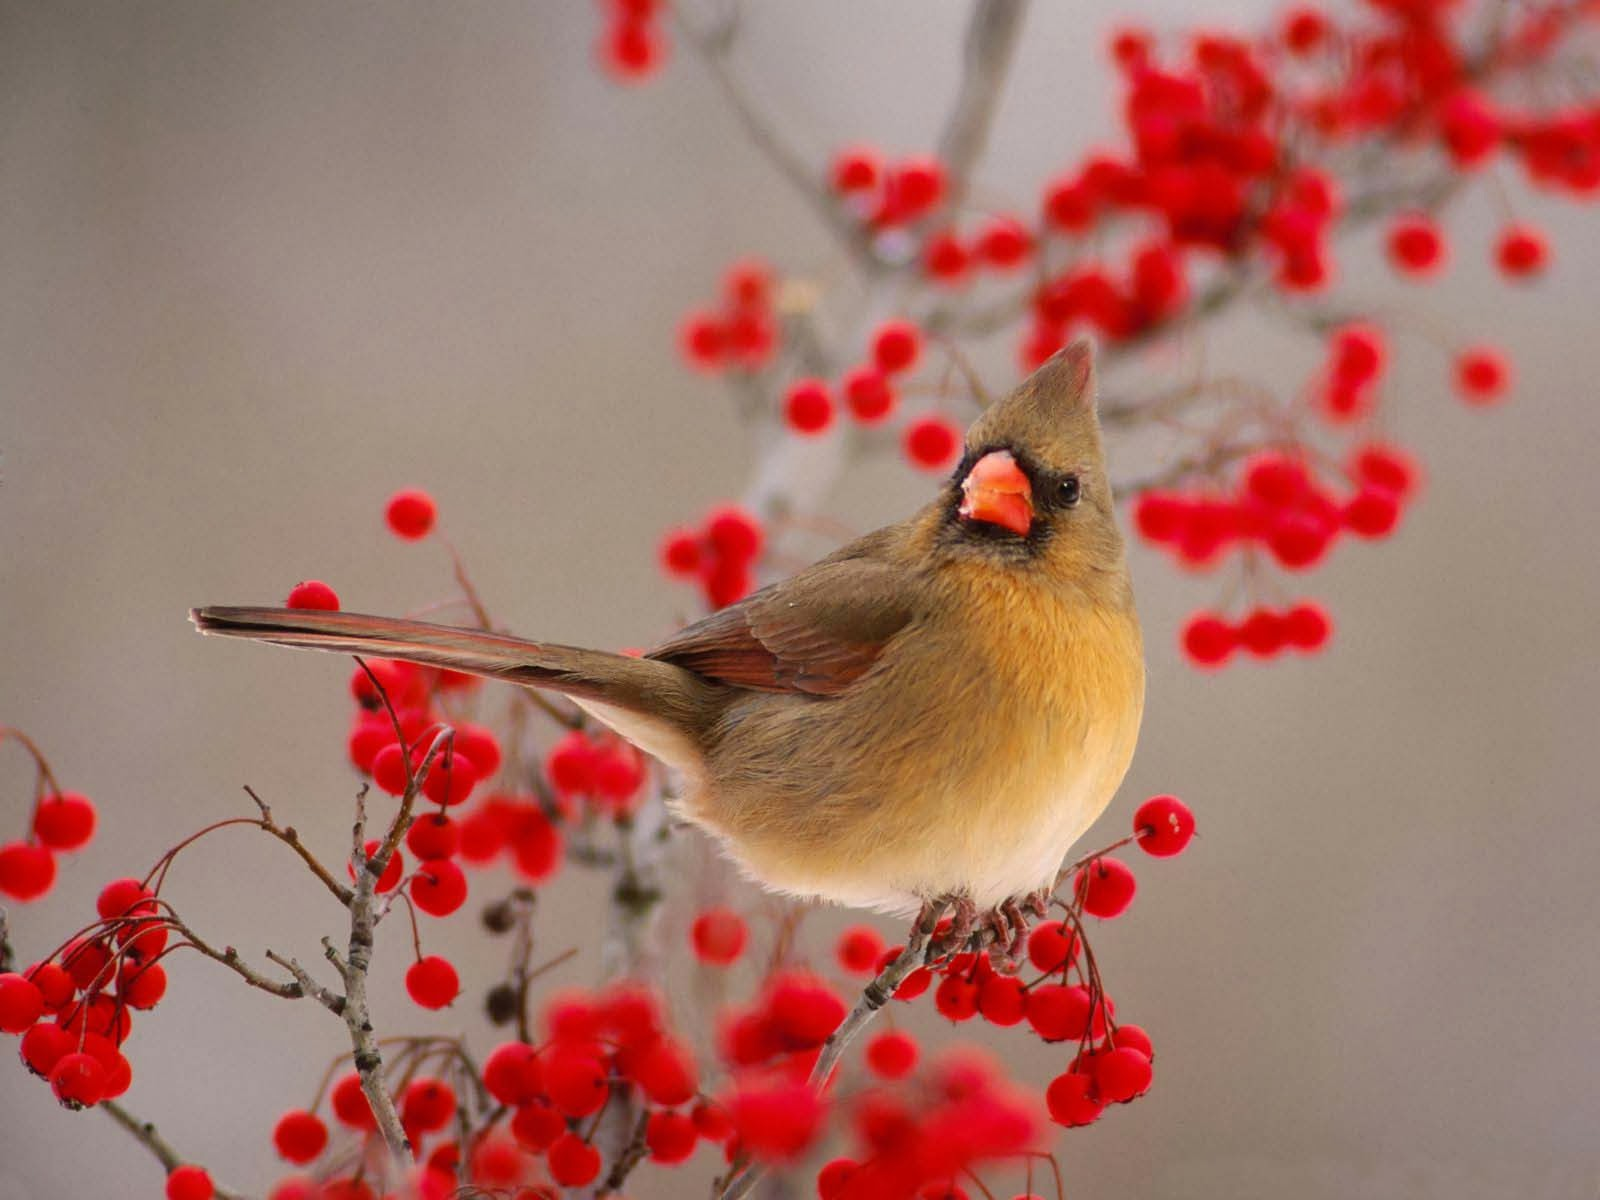 Wallpaper Hd Beautiful Nice And Lovely Birds Images If you're in search of the best full hd flowers wallpapers, you've come to the right place. wallpaper hd